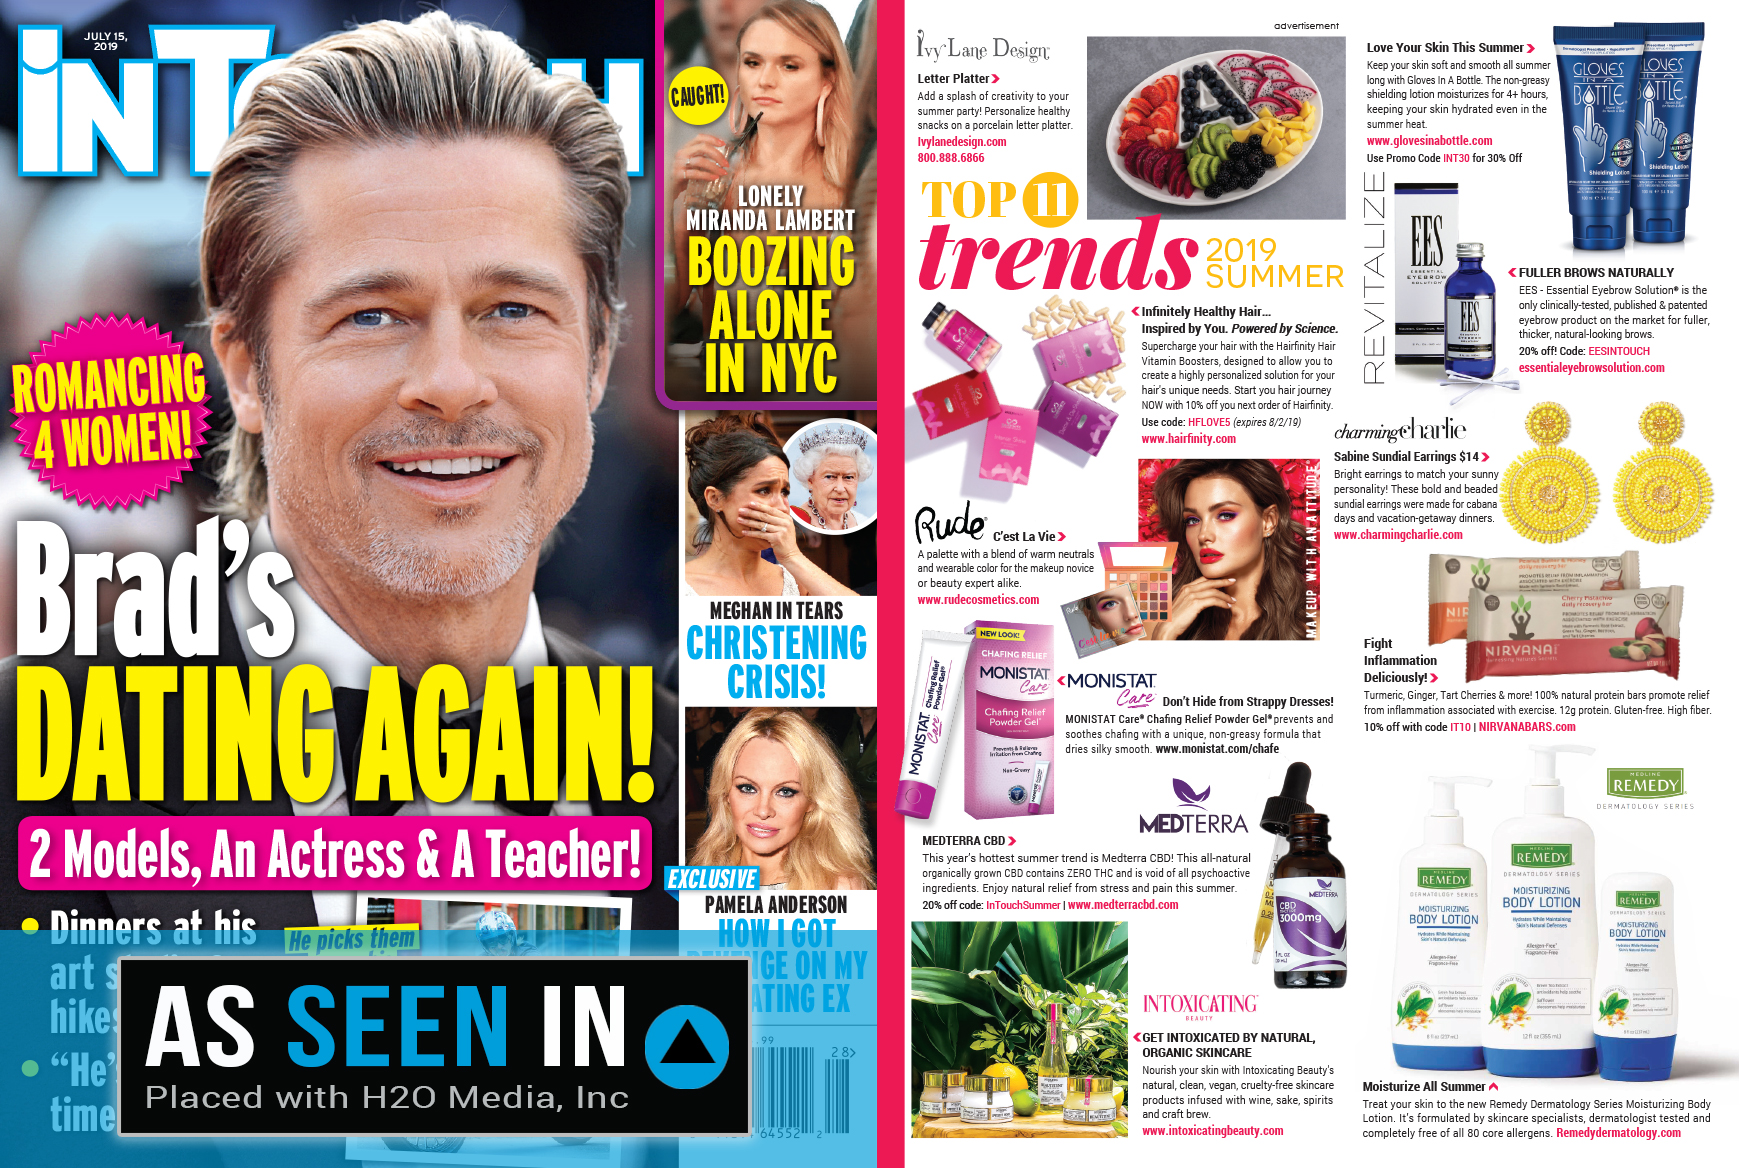 InTouch magazine containing Intoxicating Beauty products.